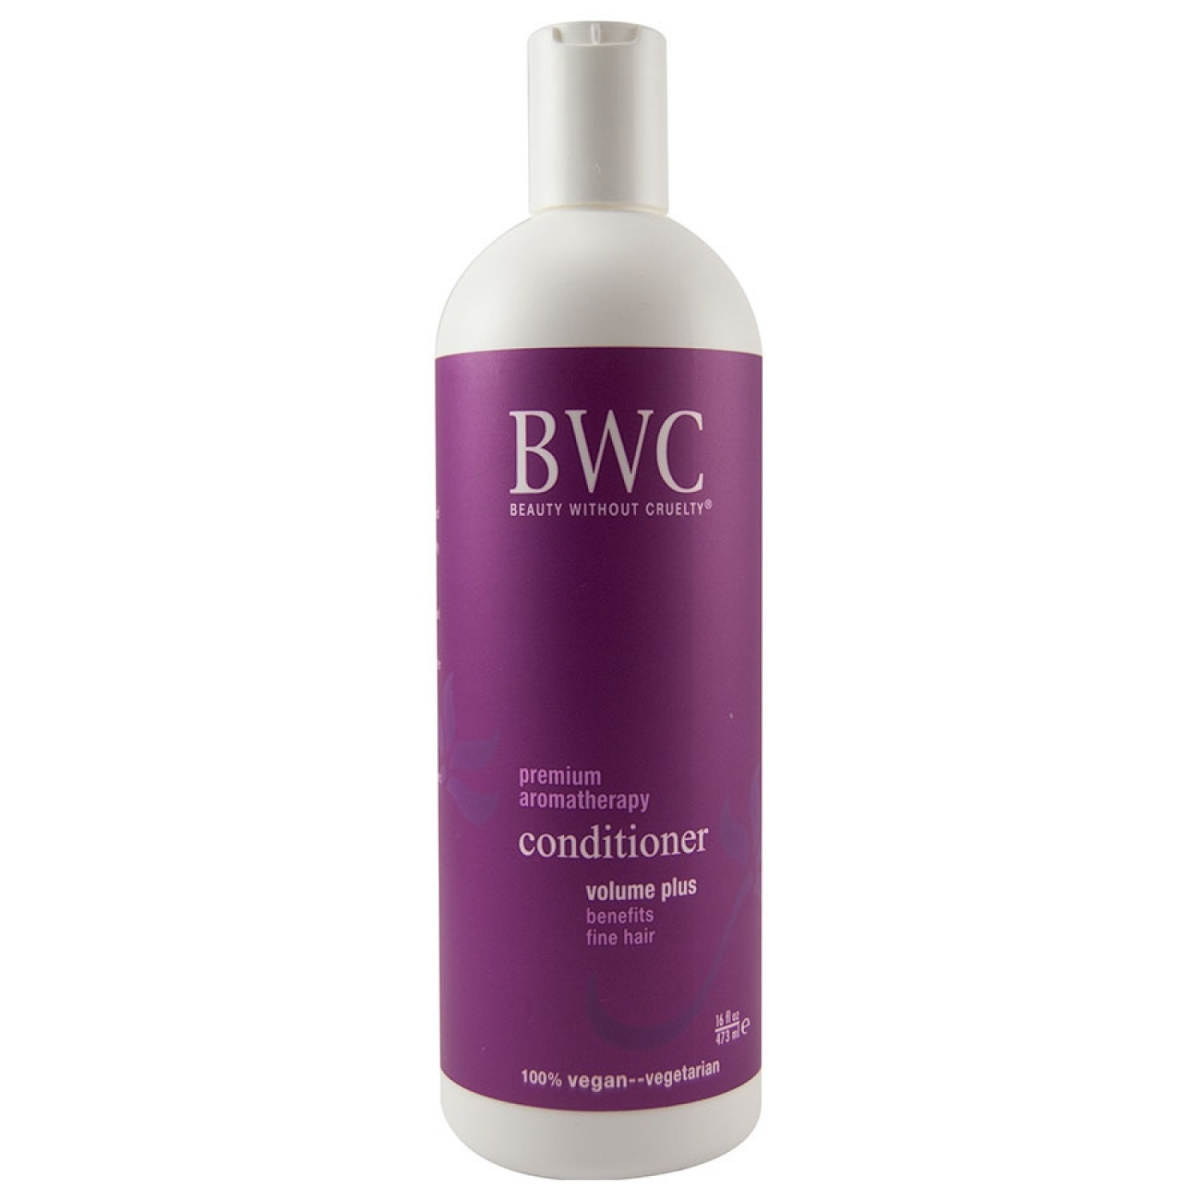 Frontier 223340 16 fl oz Beauty Without Cruelty Hair Care Volume Plus Conditioners